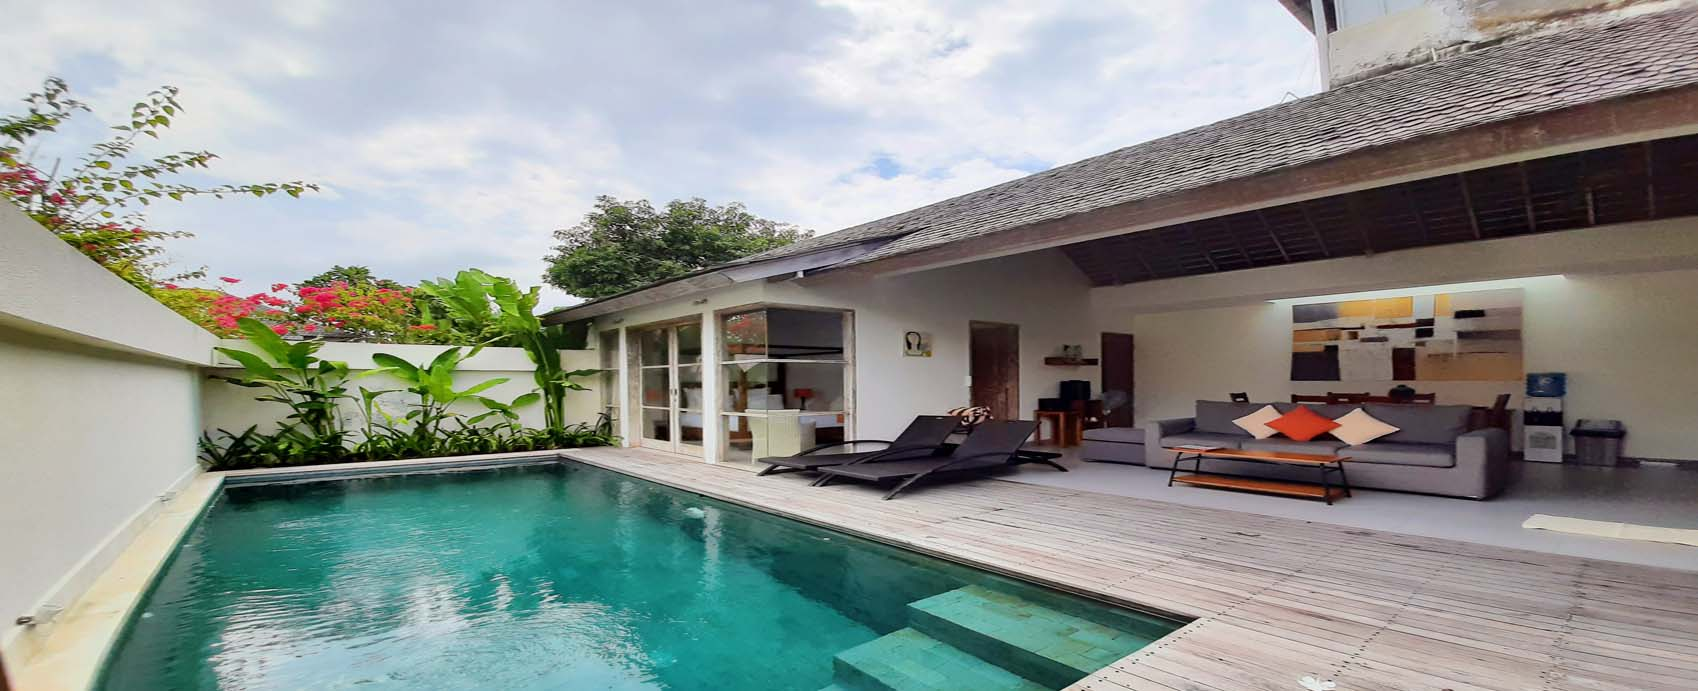 Bali Luxury 2 Bedroom Villas 2 bedroom villa for rent in legian bali